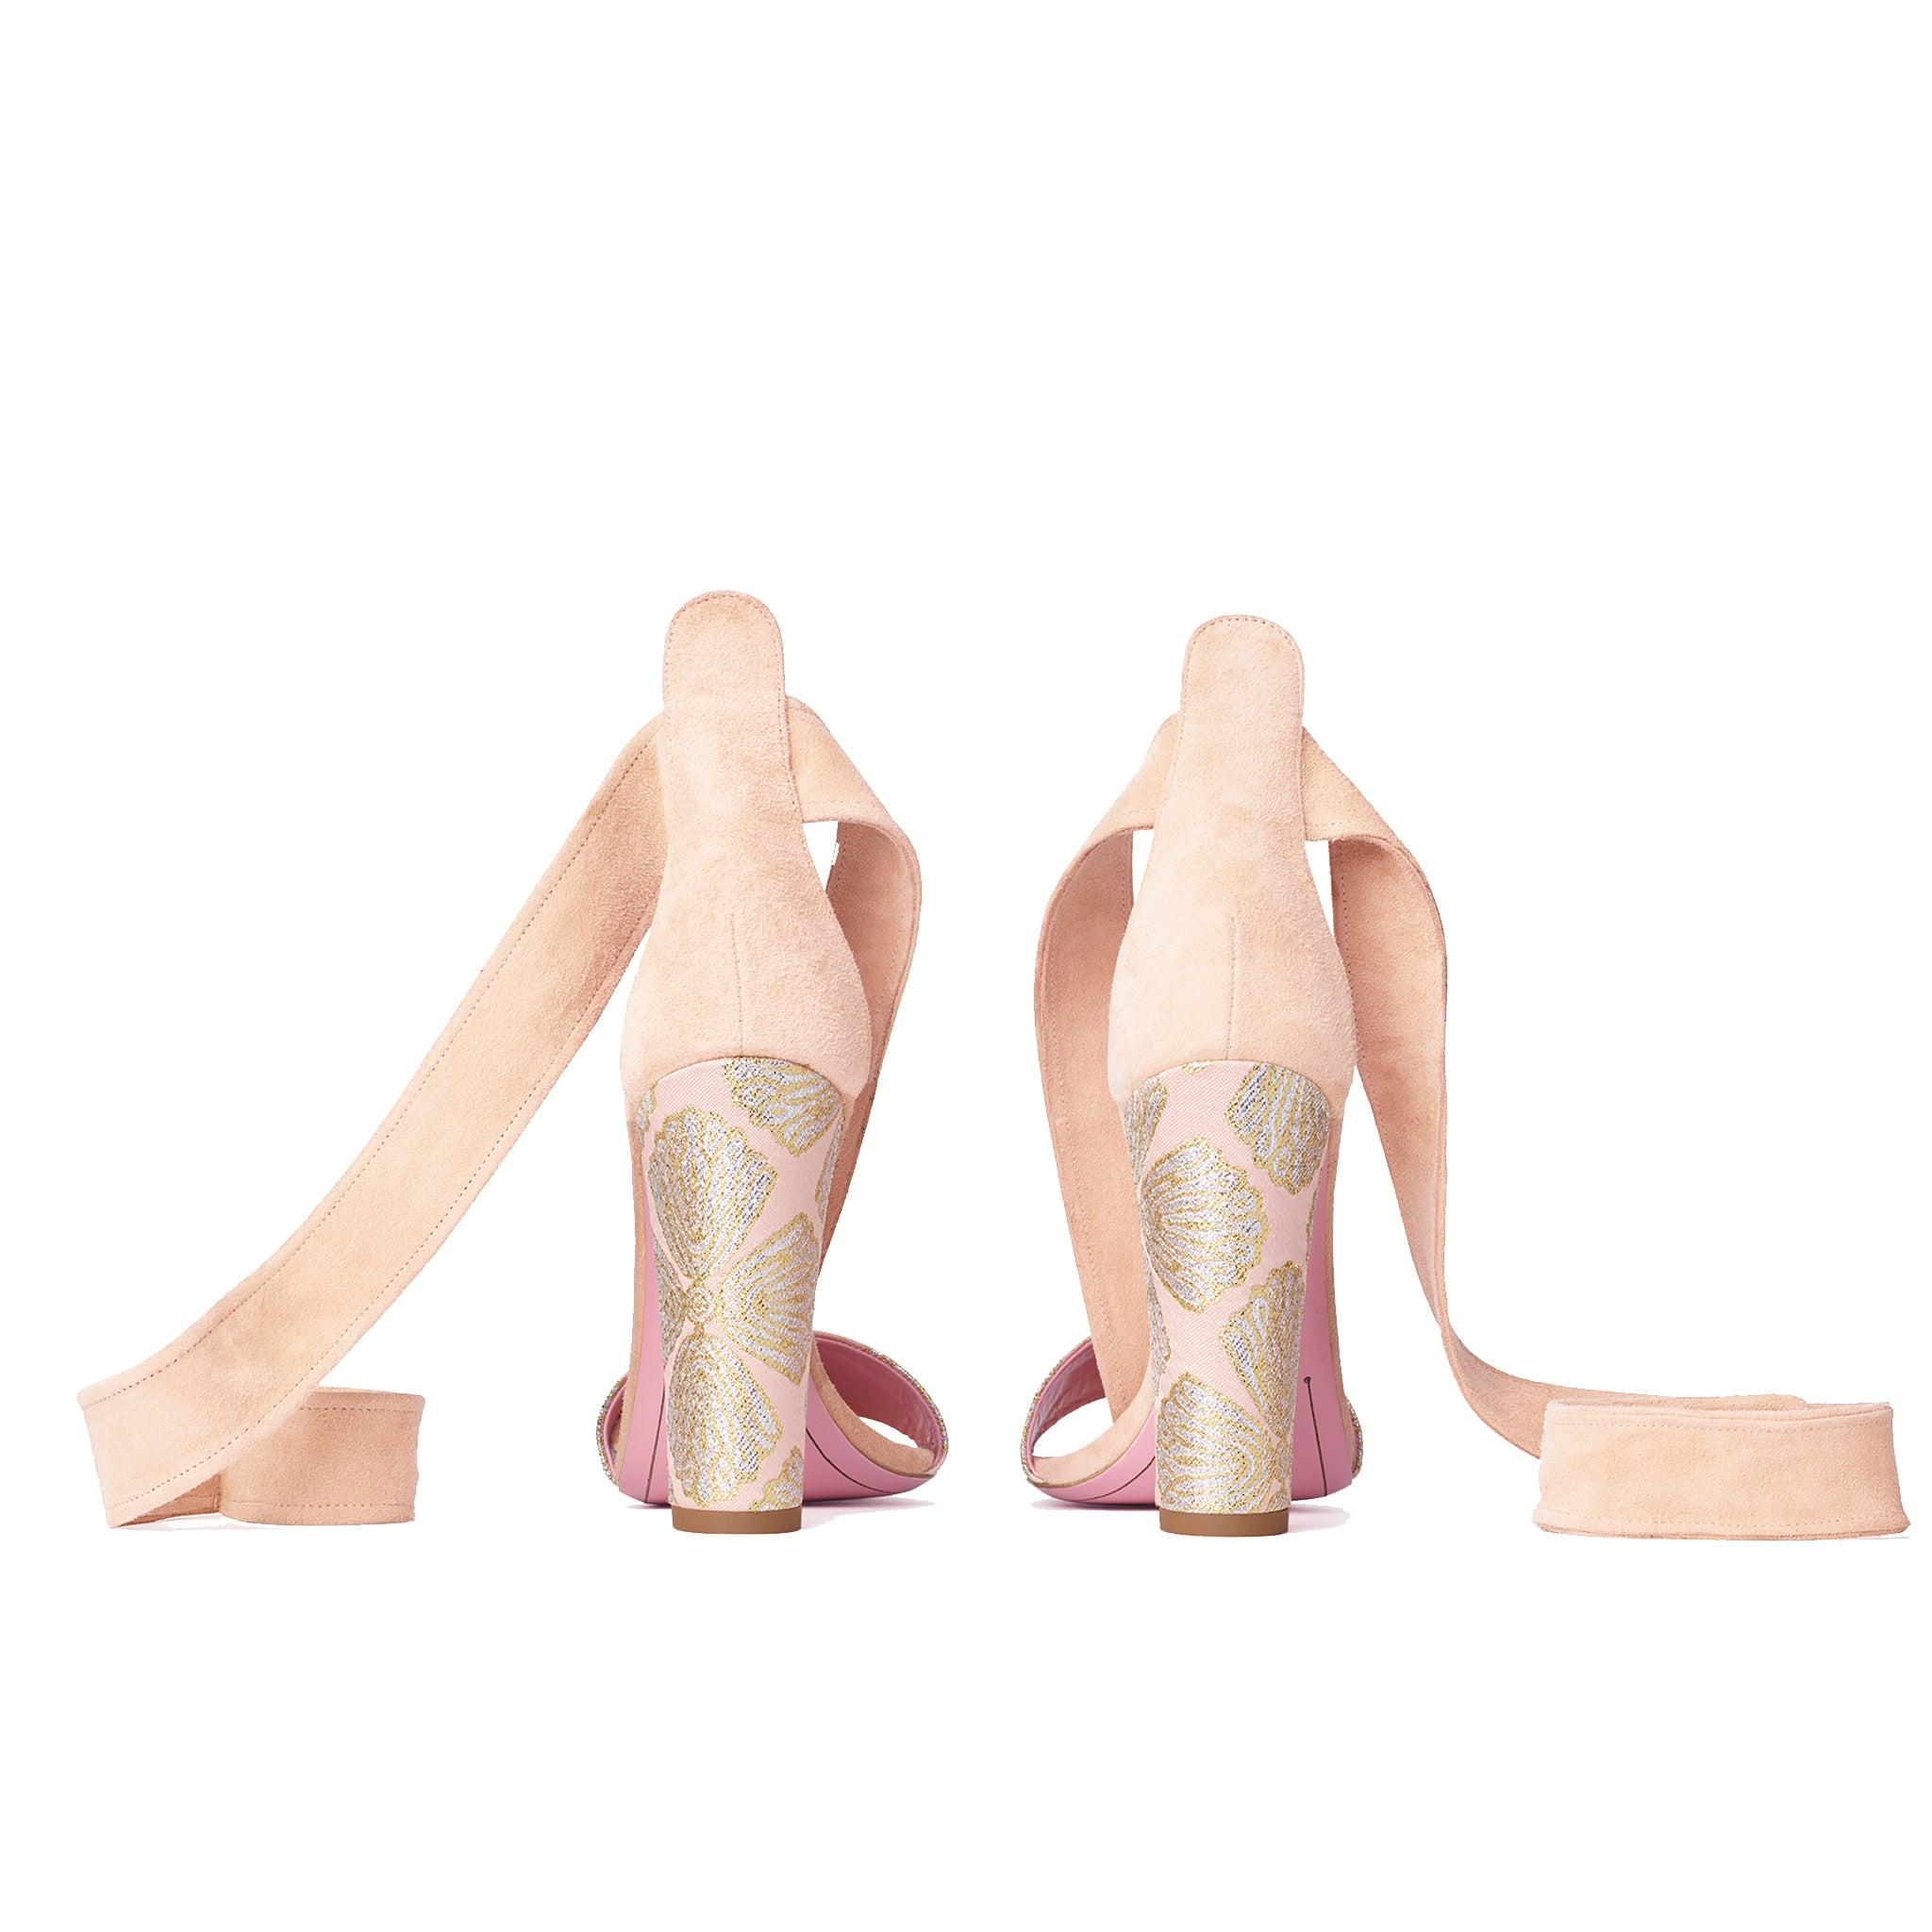 Phare Ankle tie block heel with metallic brocade heel and soft peach suede back view